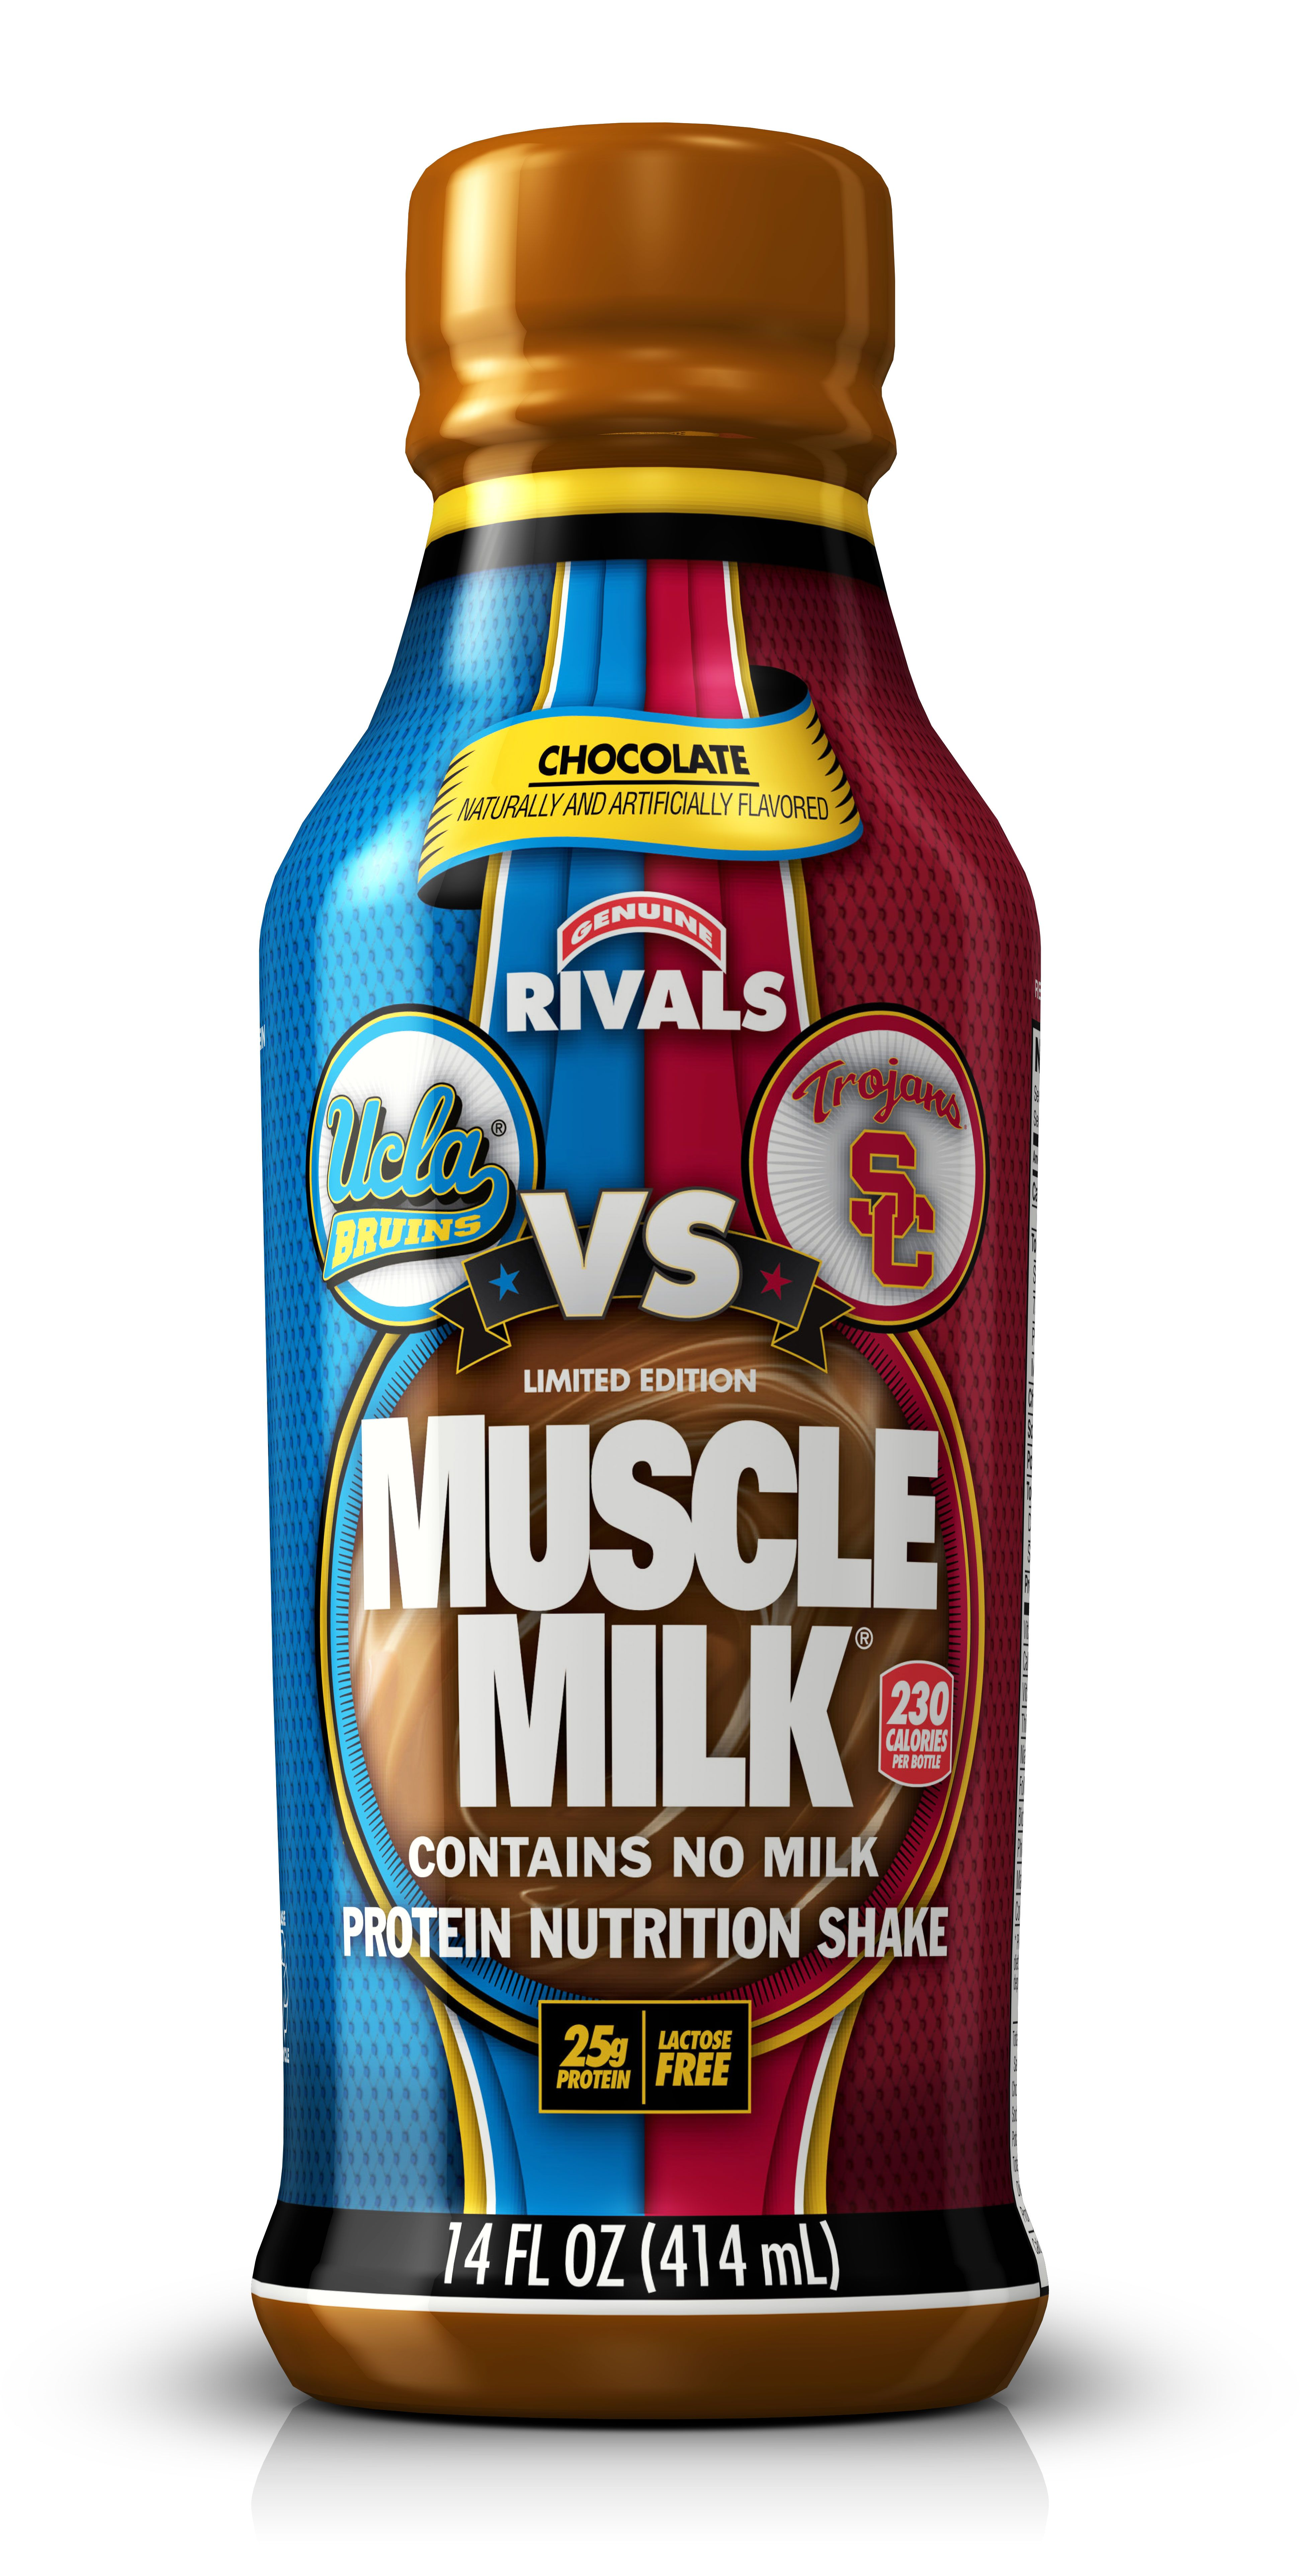 Crosstown rivalry with images muscle milk usc trojans